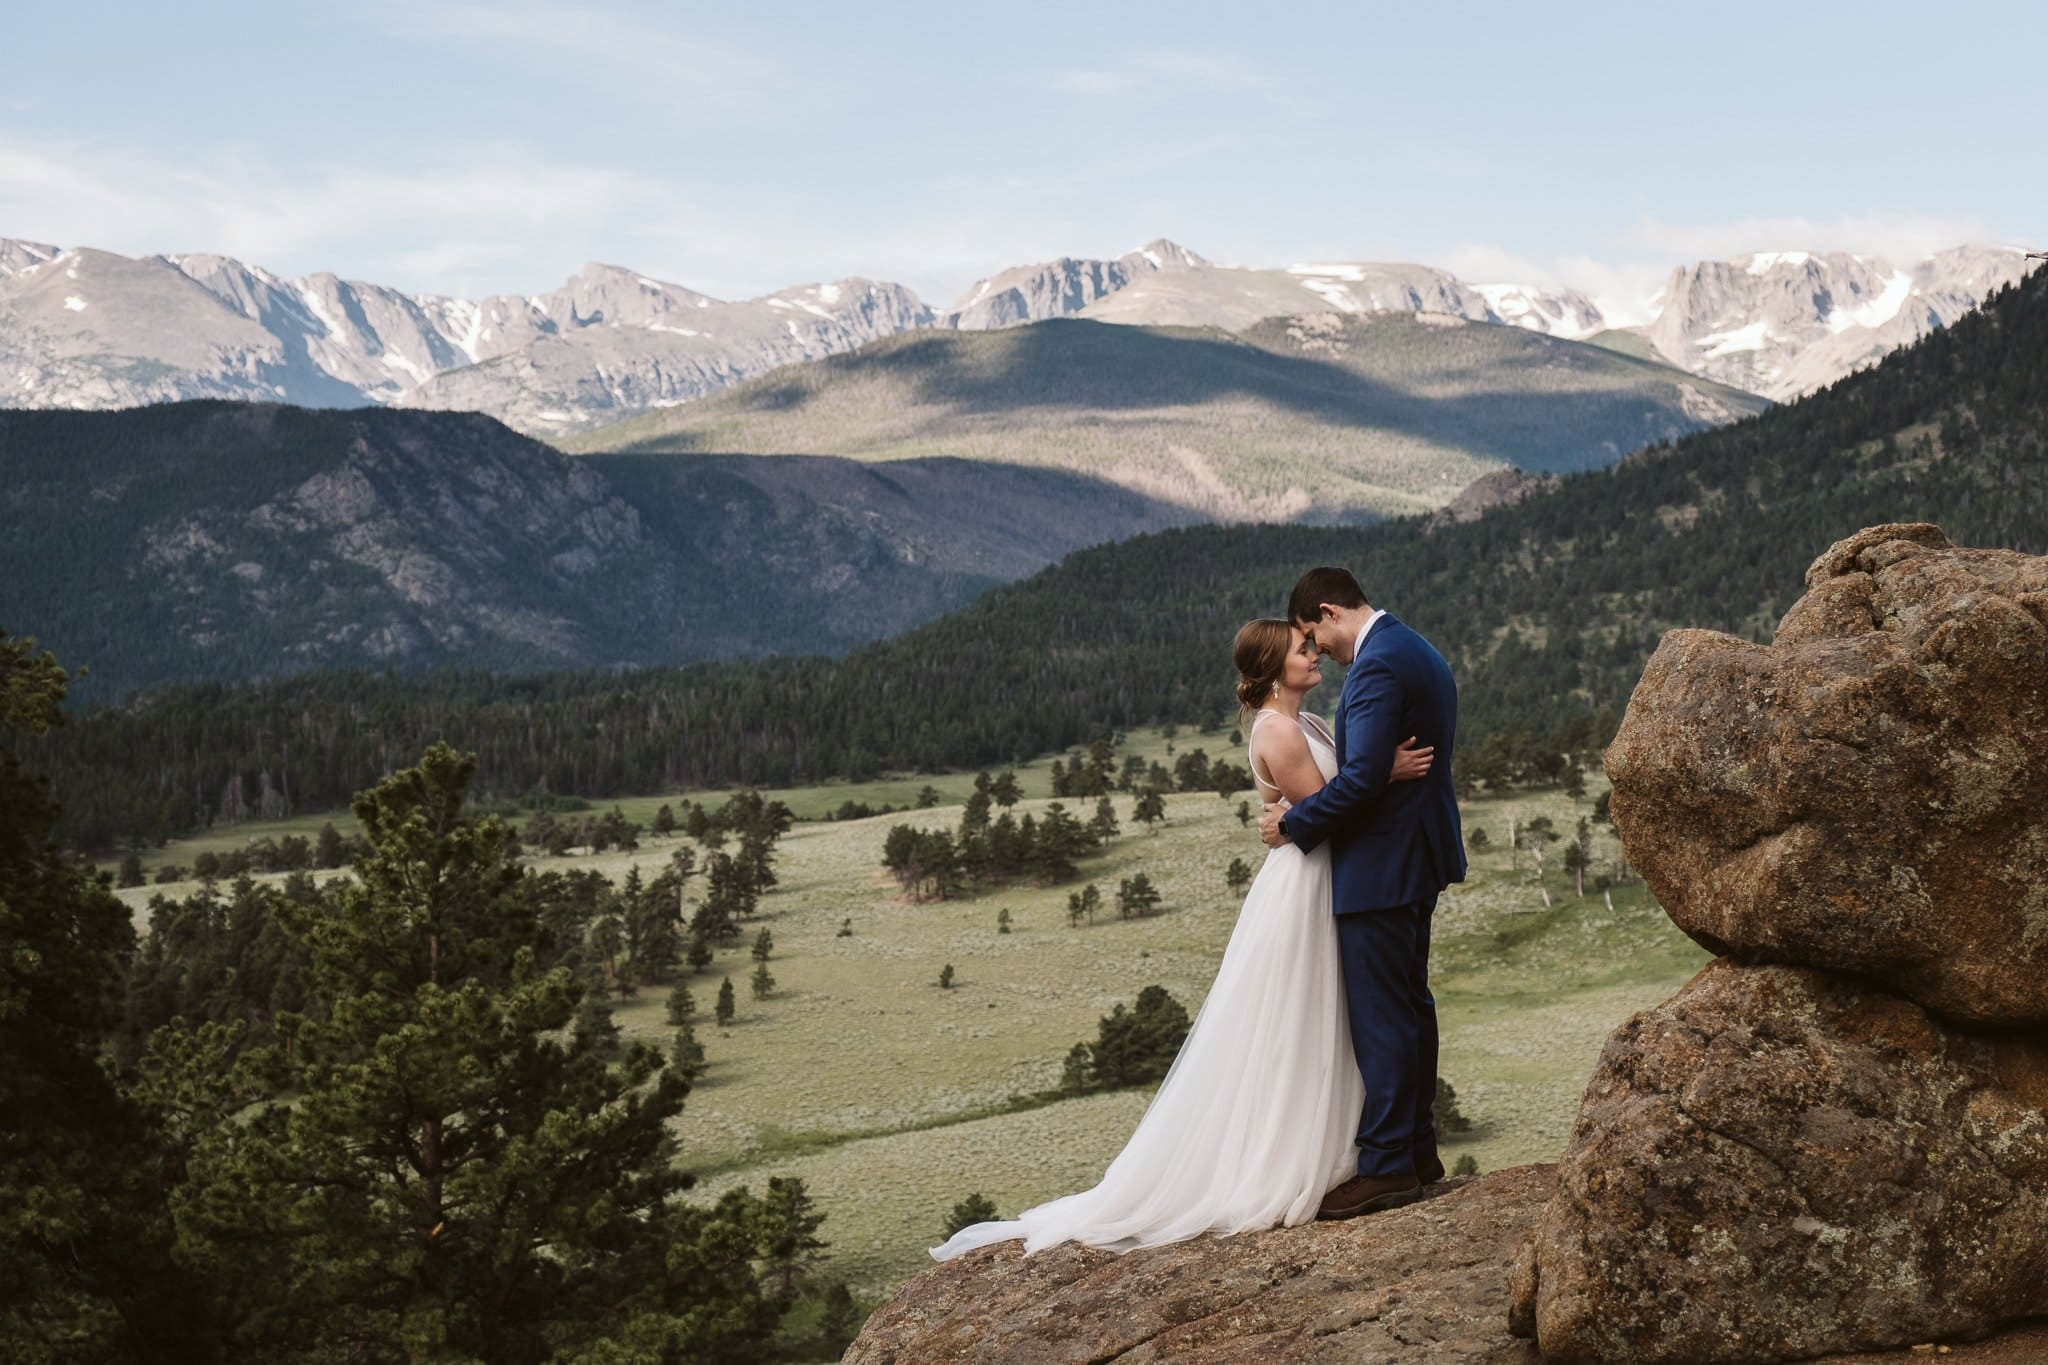 Adventure elopement in Rocky Mountain National Park, Colorado wedding photographer